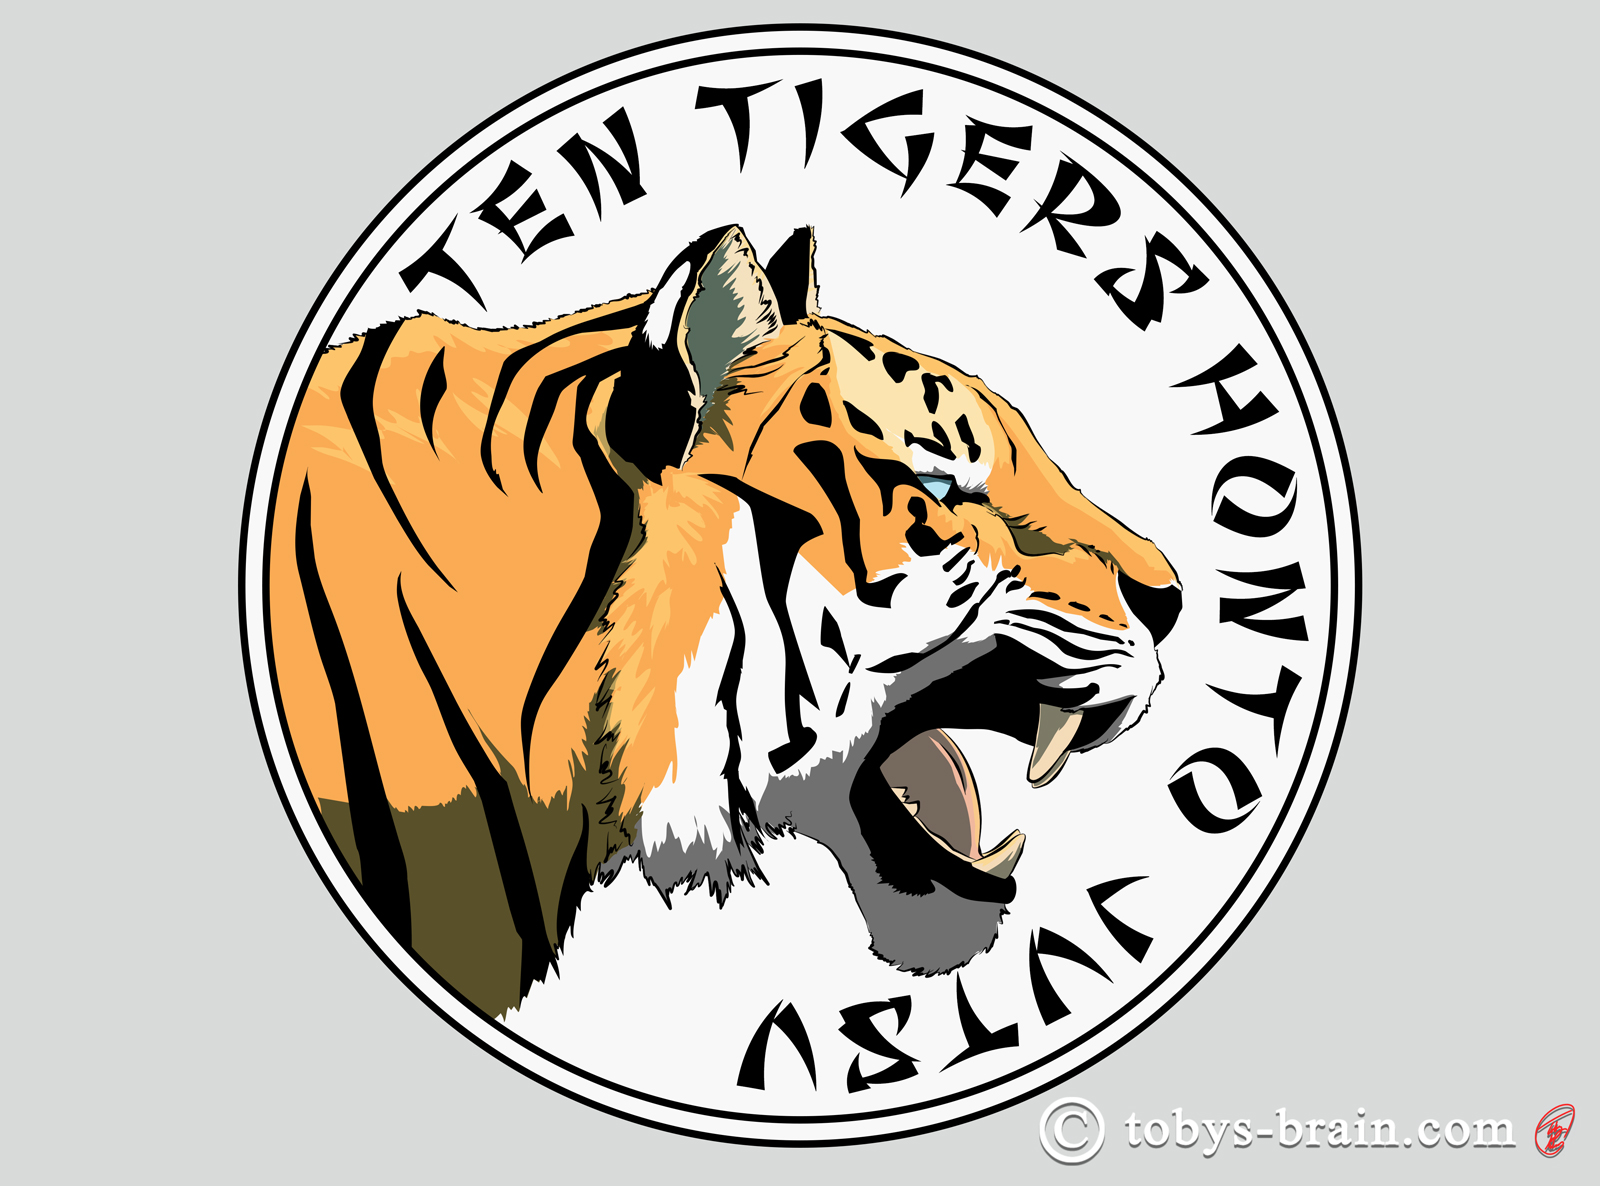 The Ten Tigers name was just begging for a tiger-related alternative logo, so I came up with a few.